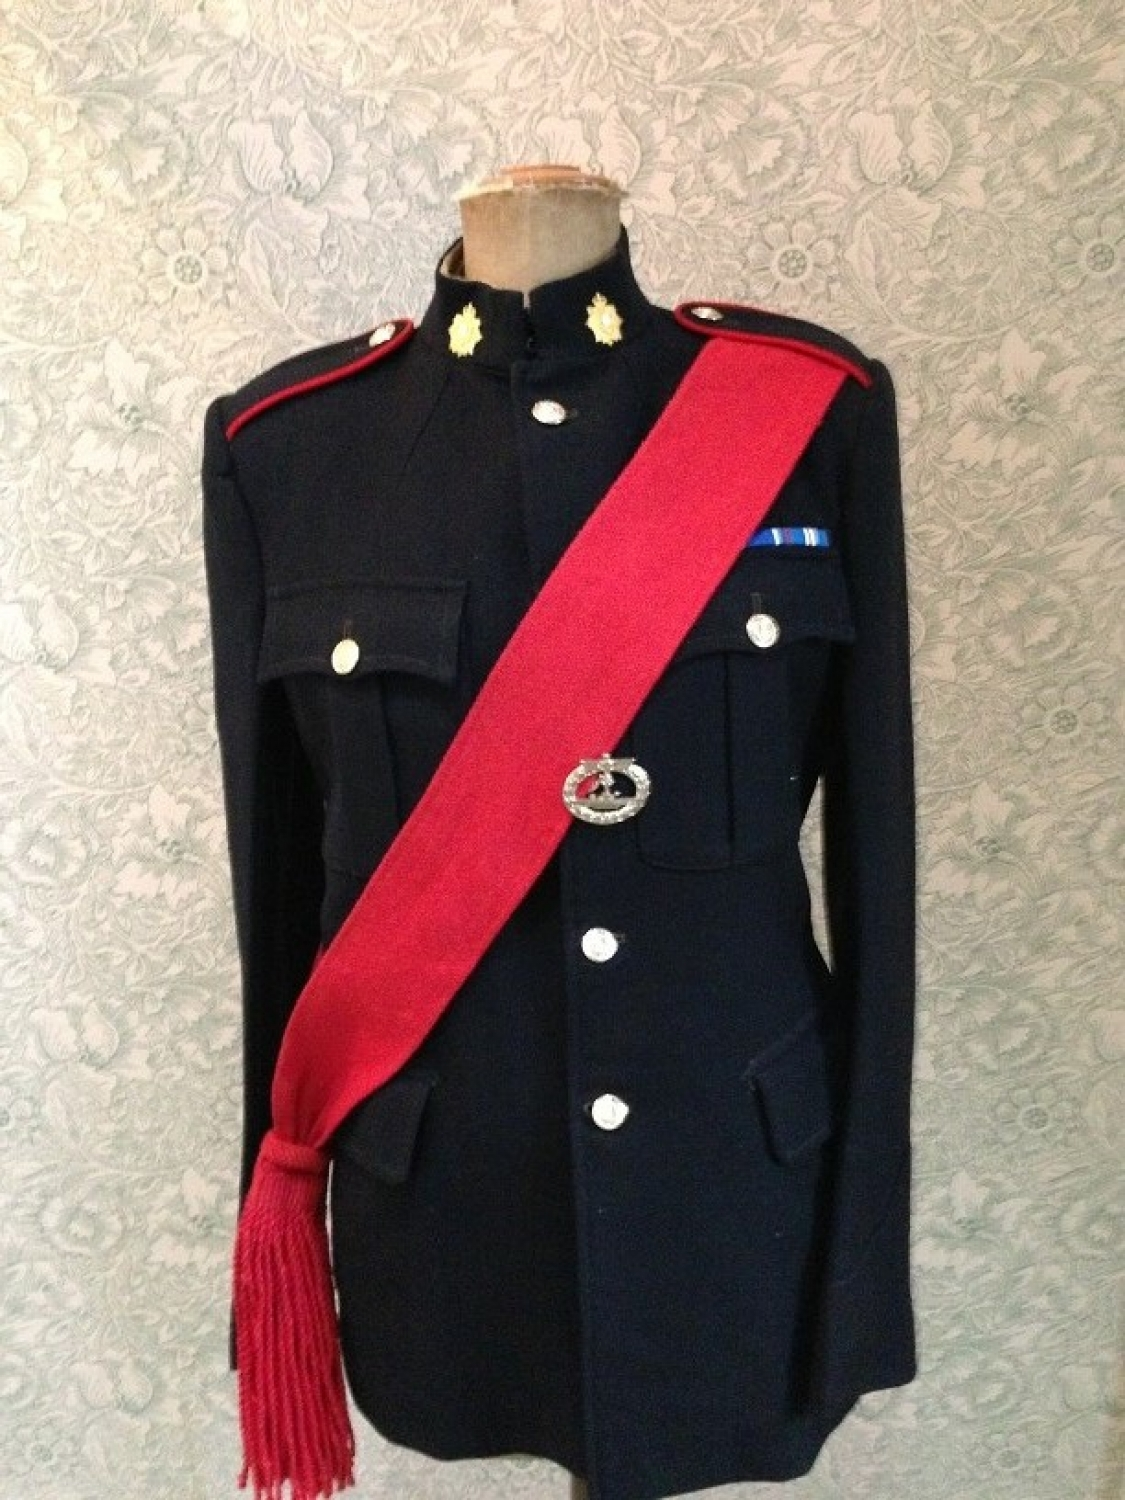 Royal artillery dress uniform